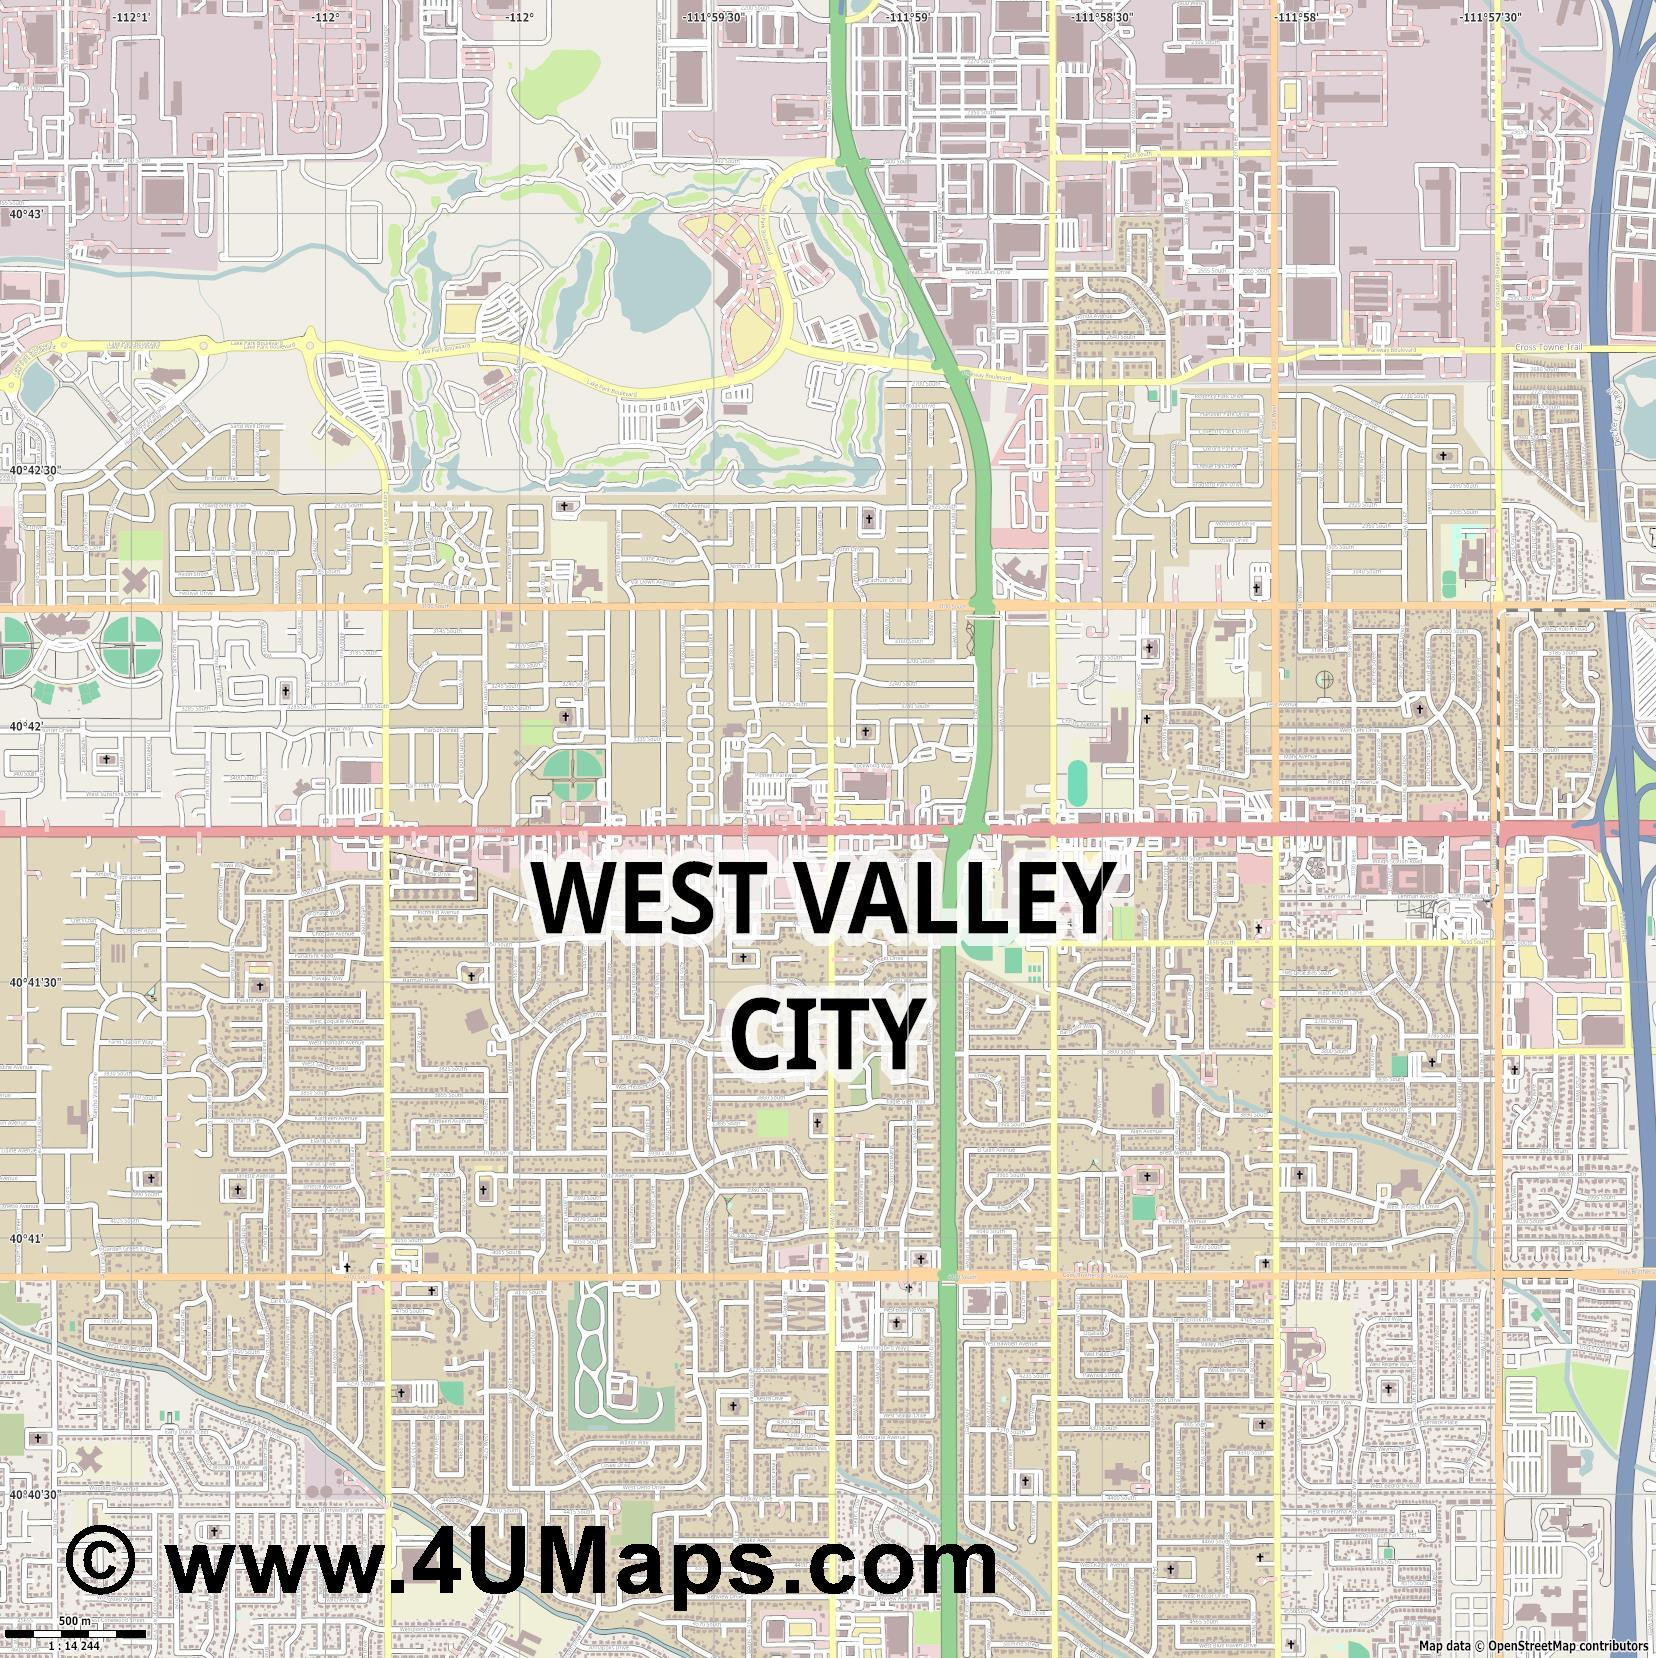 West Valley City  jpg ultra high detail preview vector city map